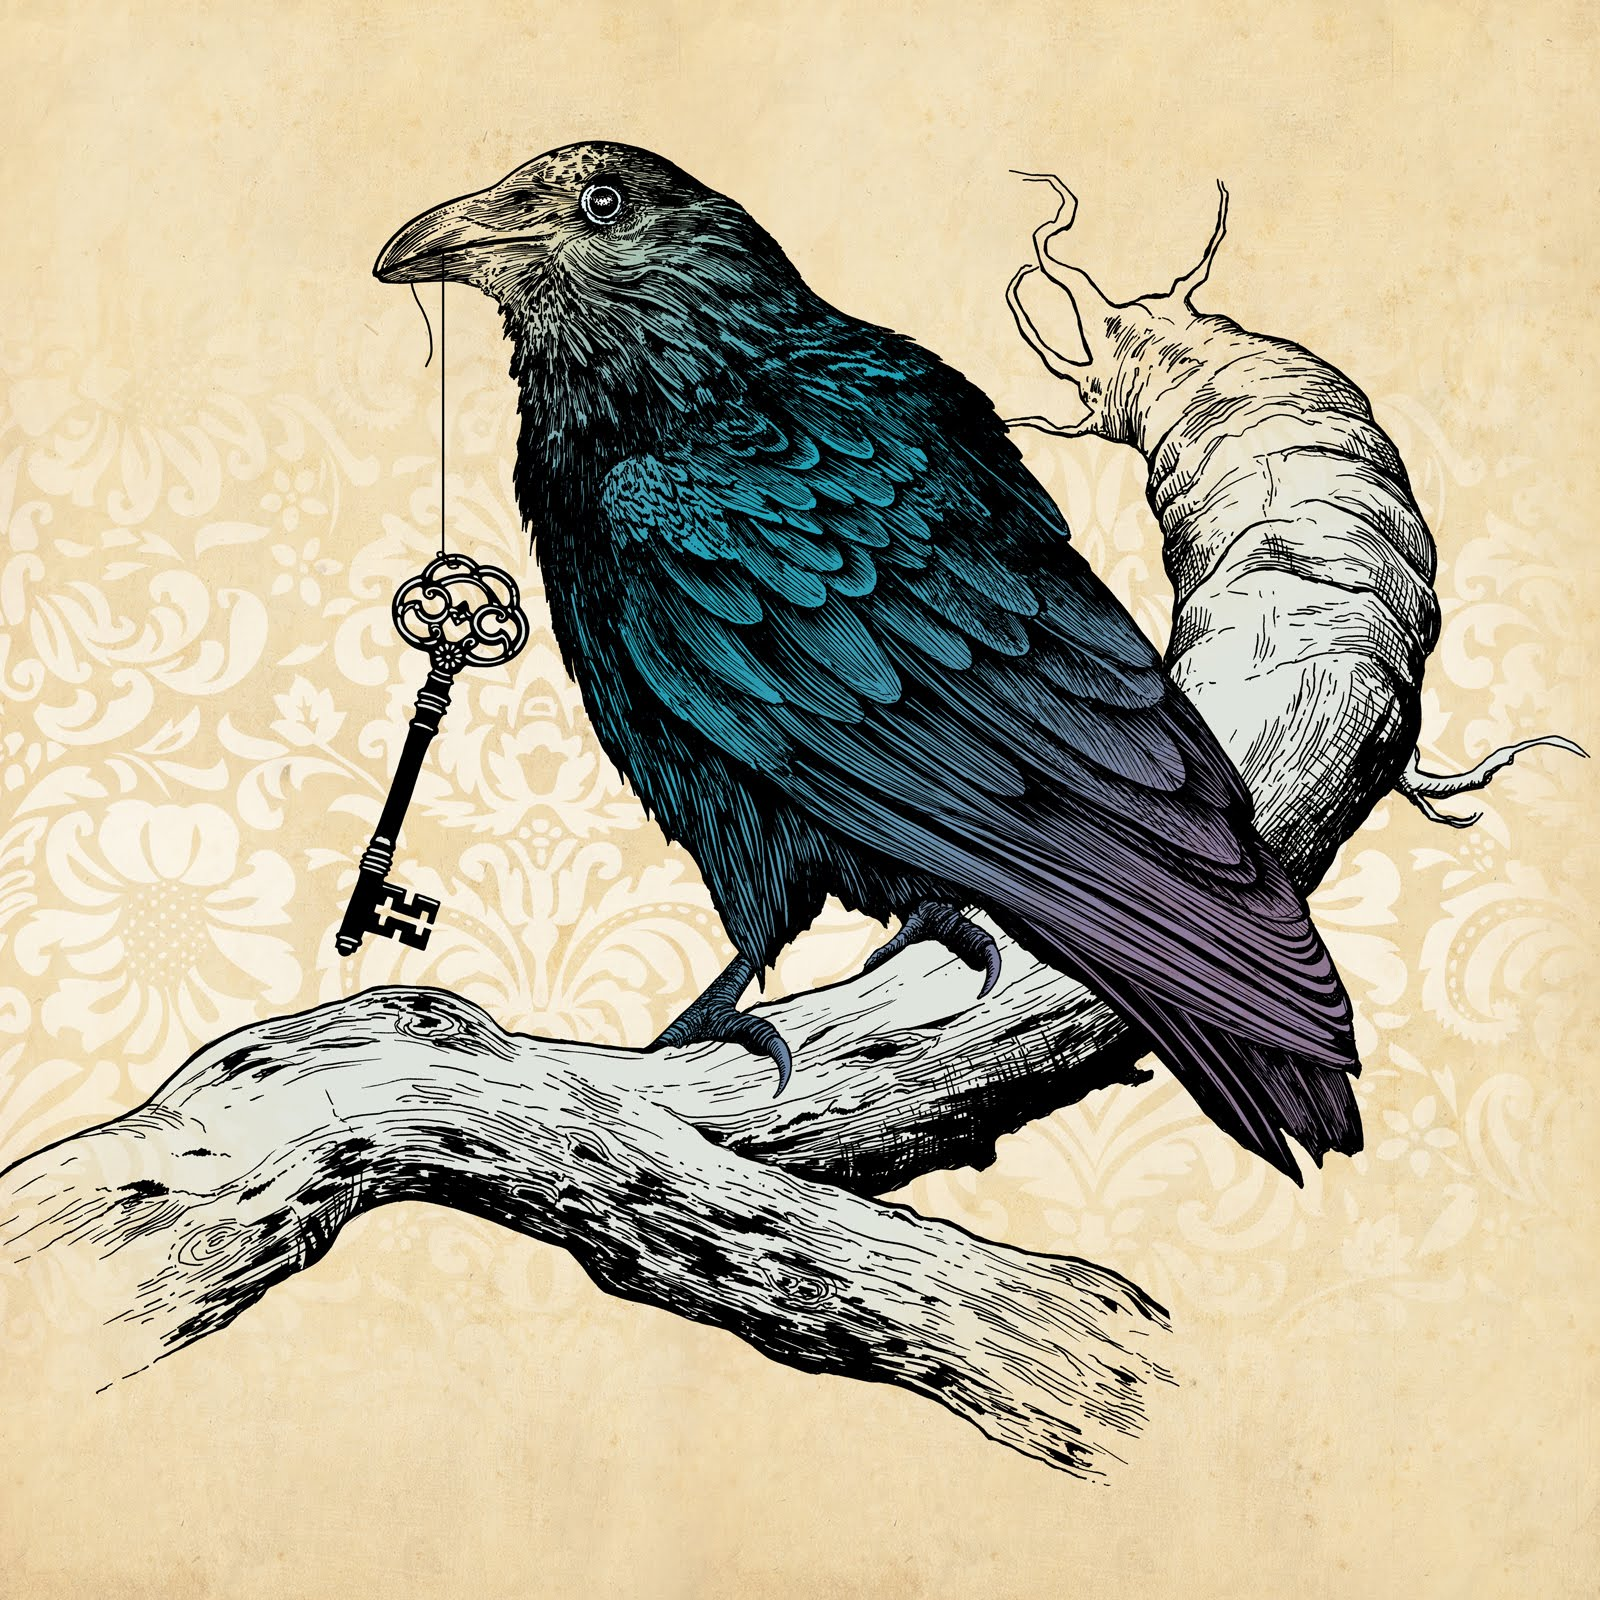 Turquoise raven keepinh a key on tree branch tattoo design